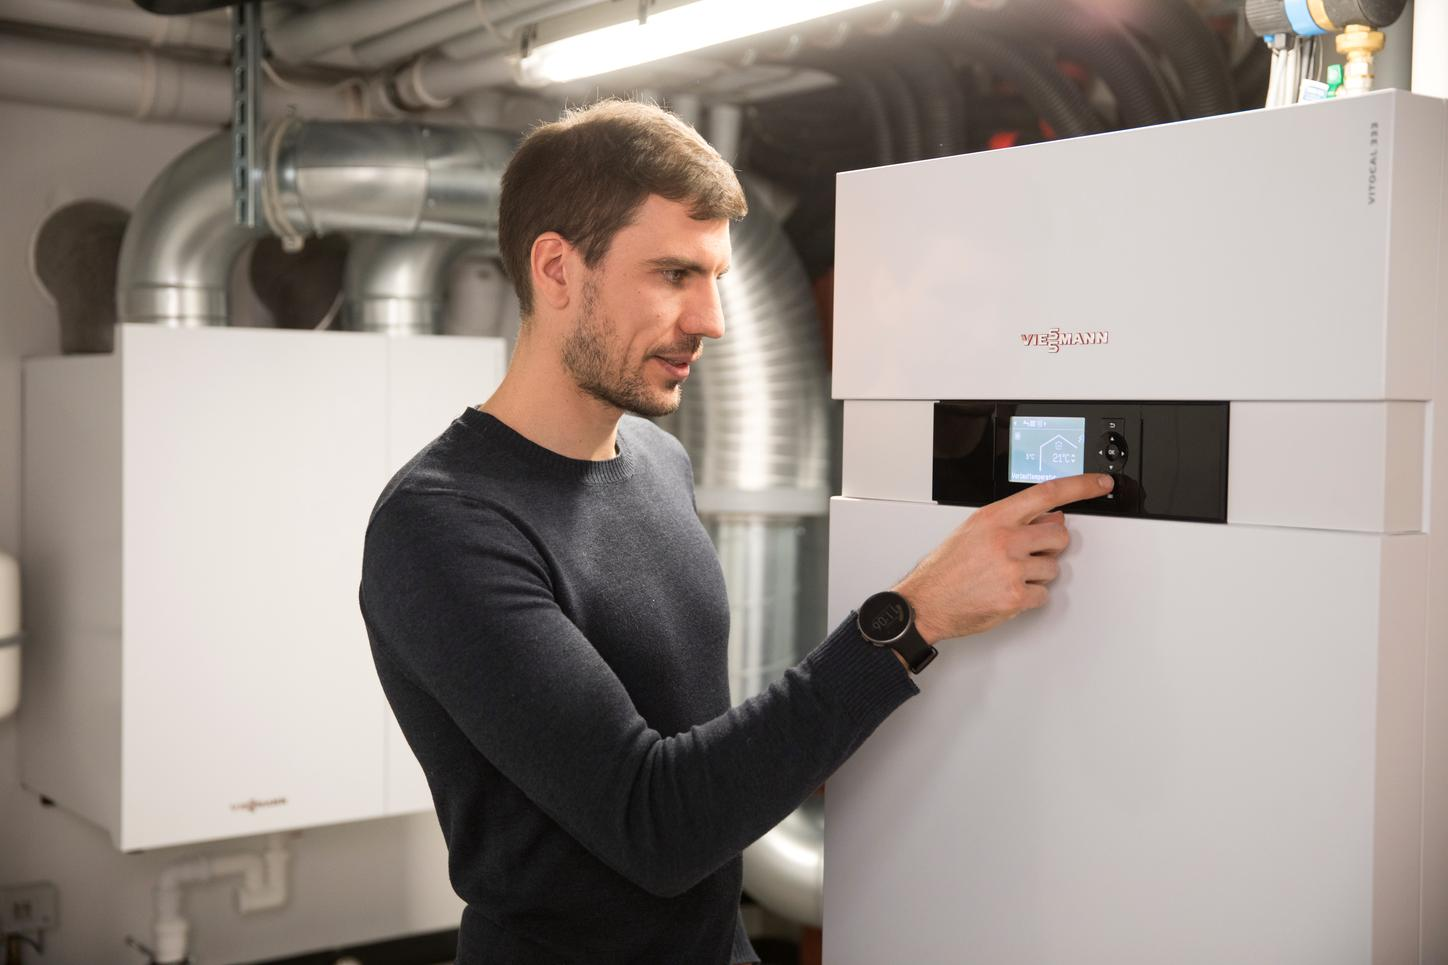 The picture shows biathlete and Olympic champion Arnd Peiffer with his Viessmann heating